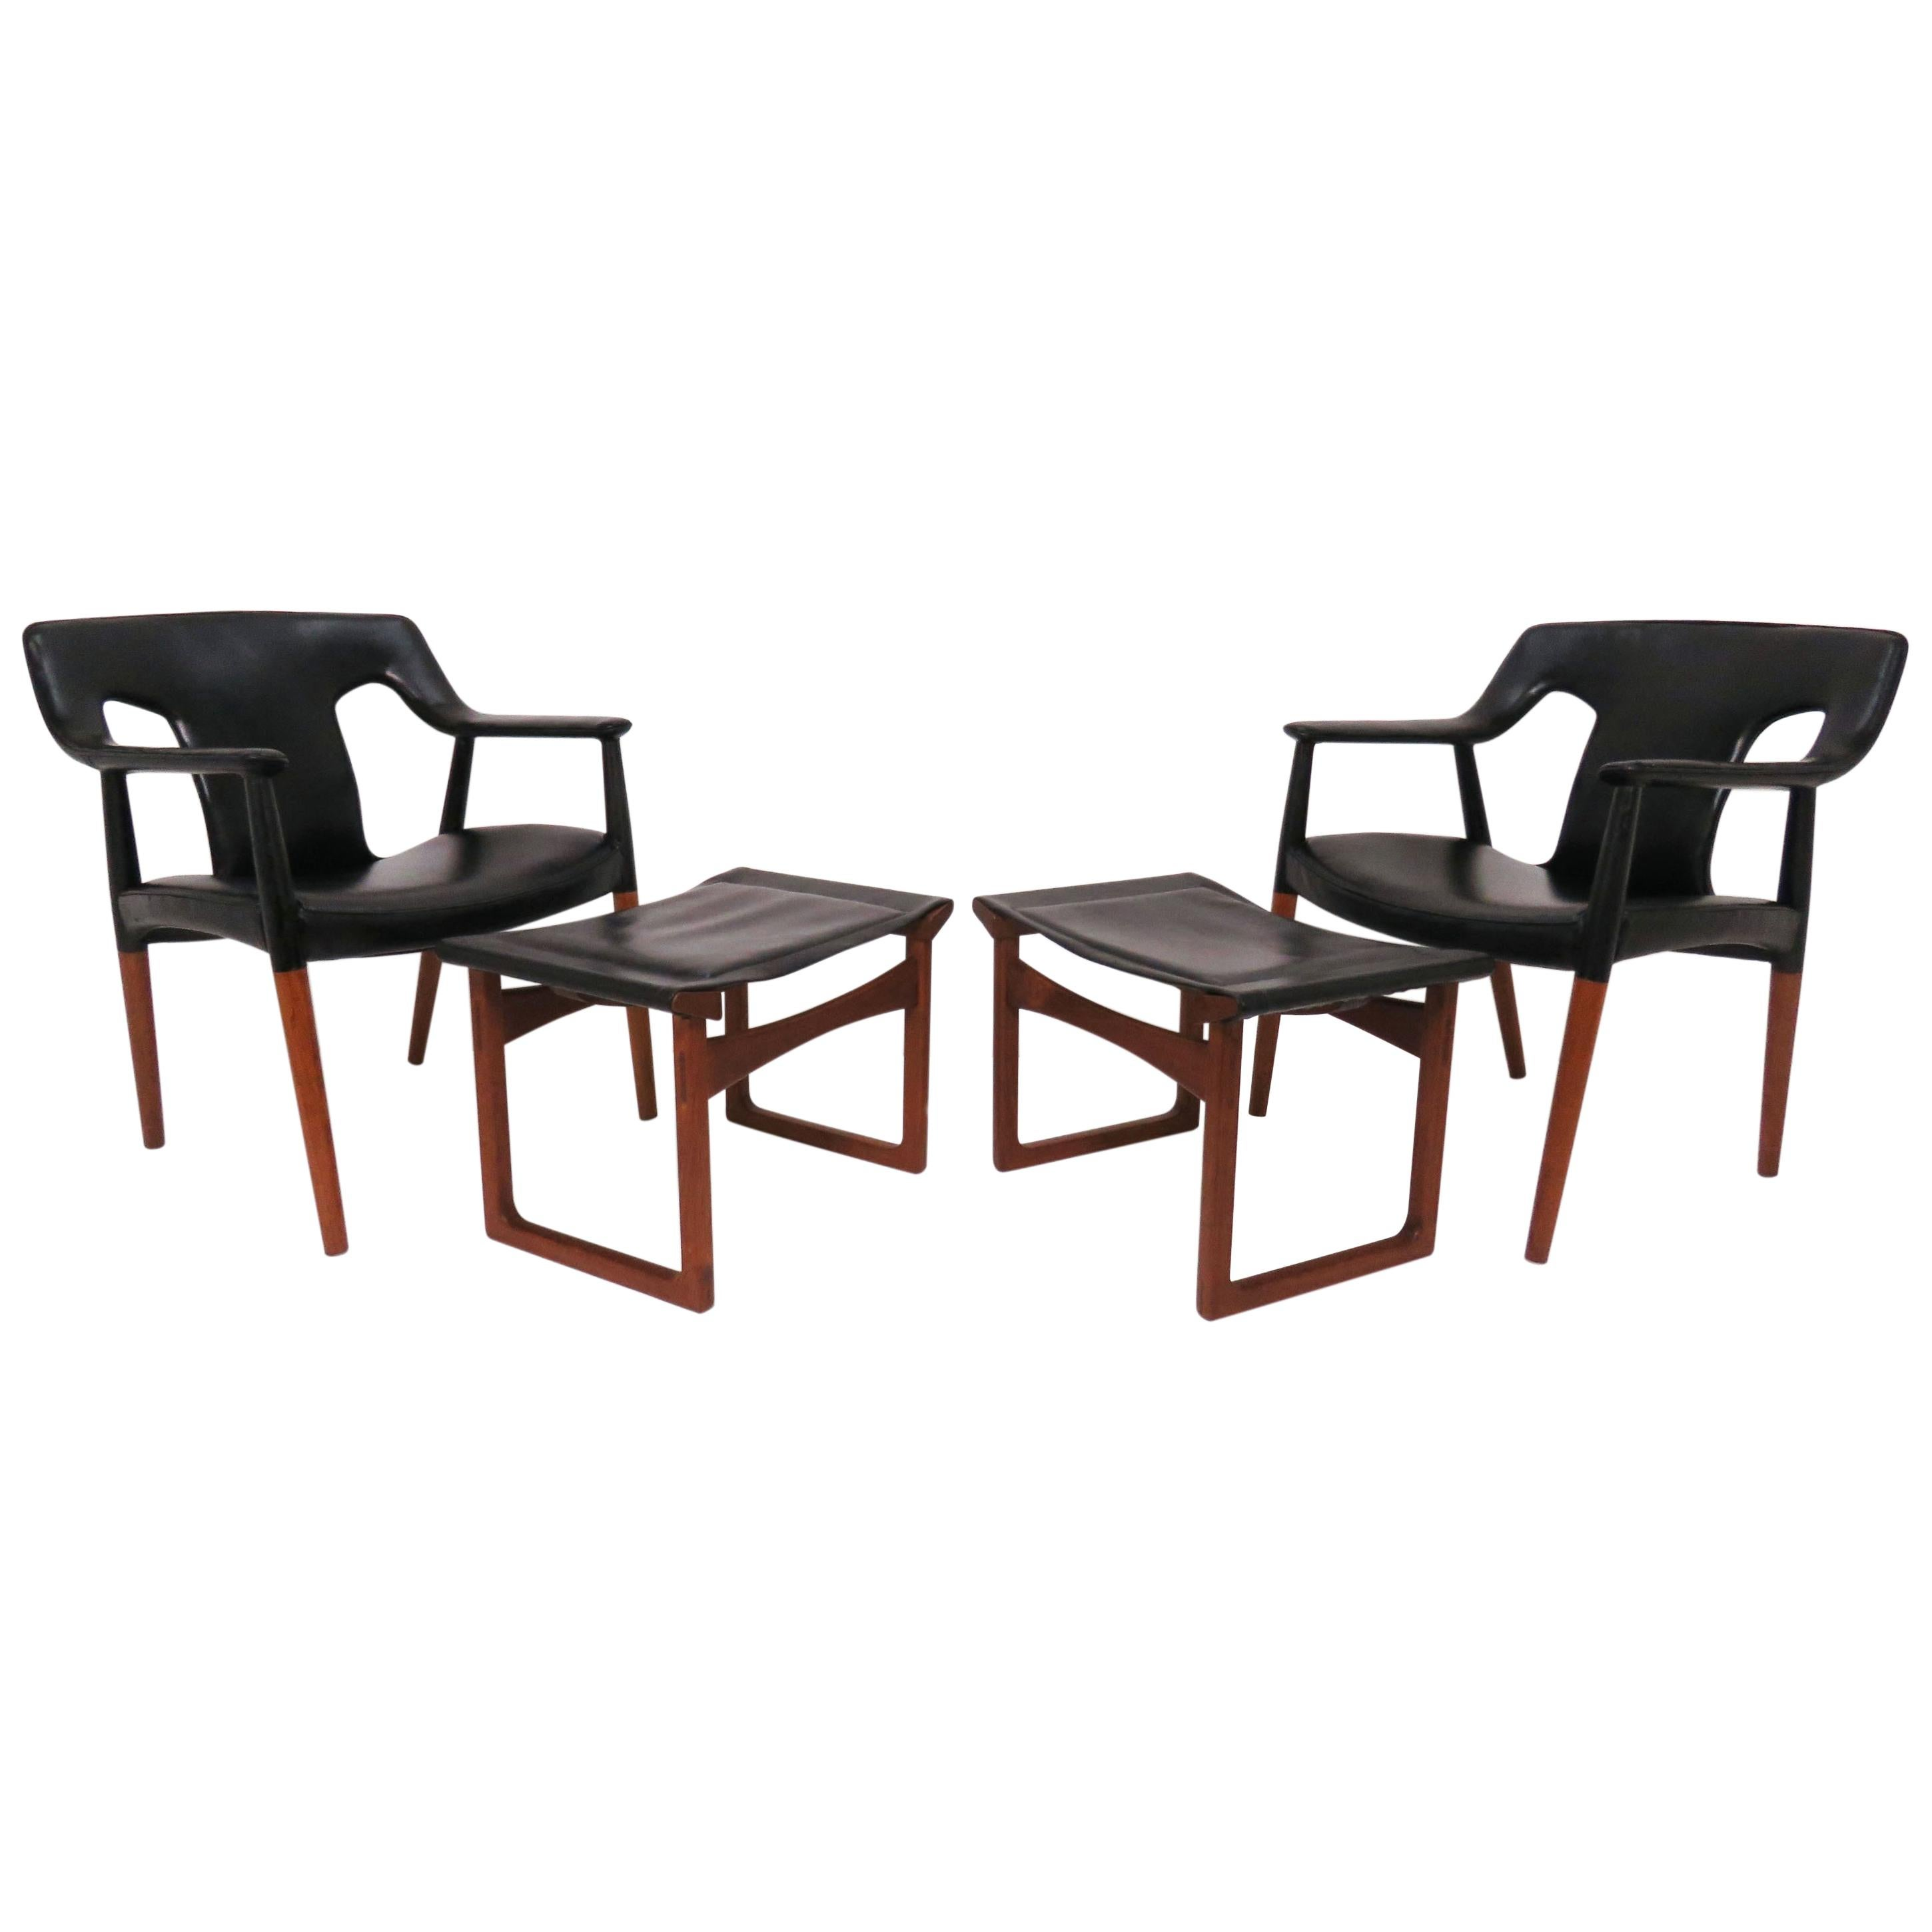 Ejner Larsen and A. Bender Madsen Danish Teak Lounge Chair and Ottoman Set